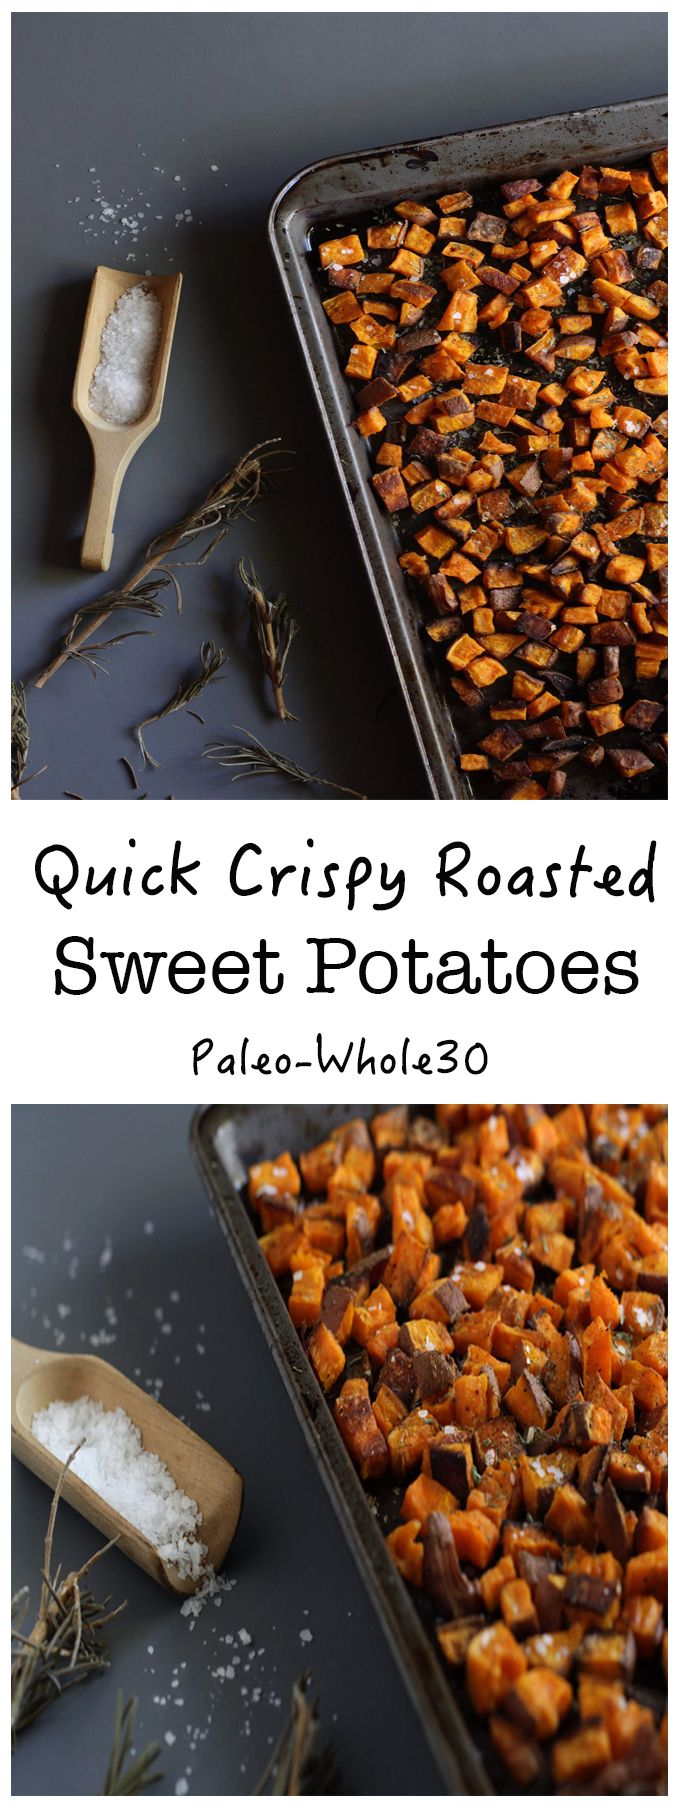 These quick crispy roasted sweet potatoes are honestly one of our go-to recipes for breakfast, lunch or dinner! You can never have enough crispy sweet potatoes in the house, at least ours! What I love about this recipe is that it is super fast to whip upand oh sosatisfying. Like I could lock myself in …